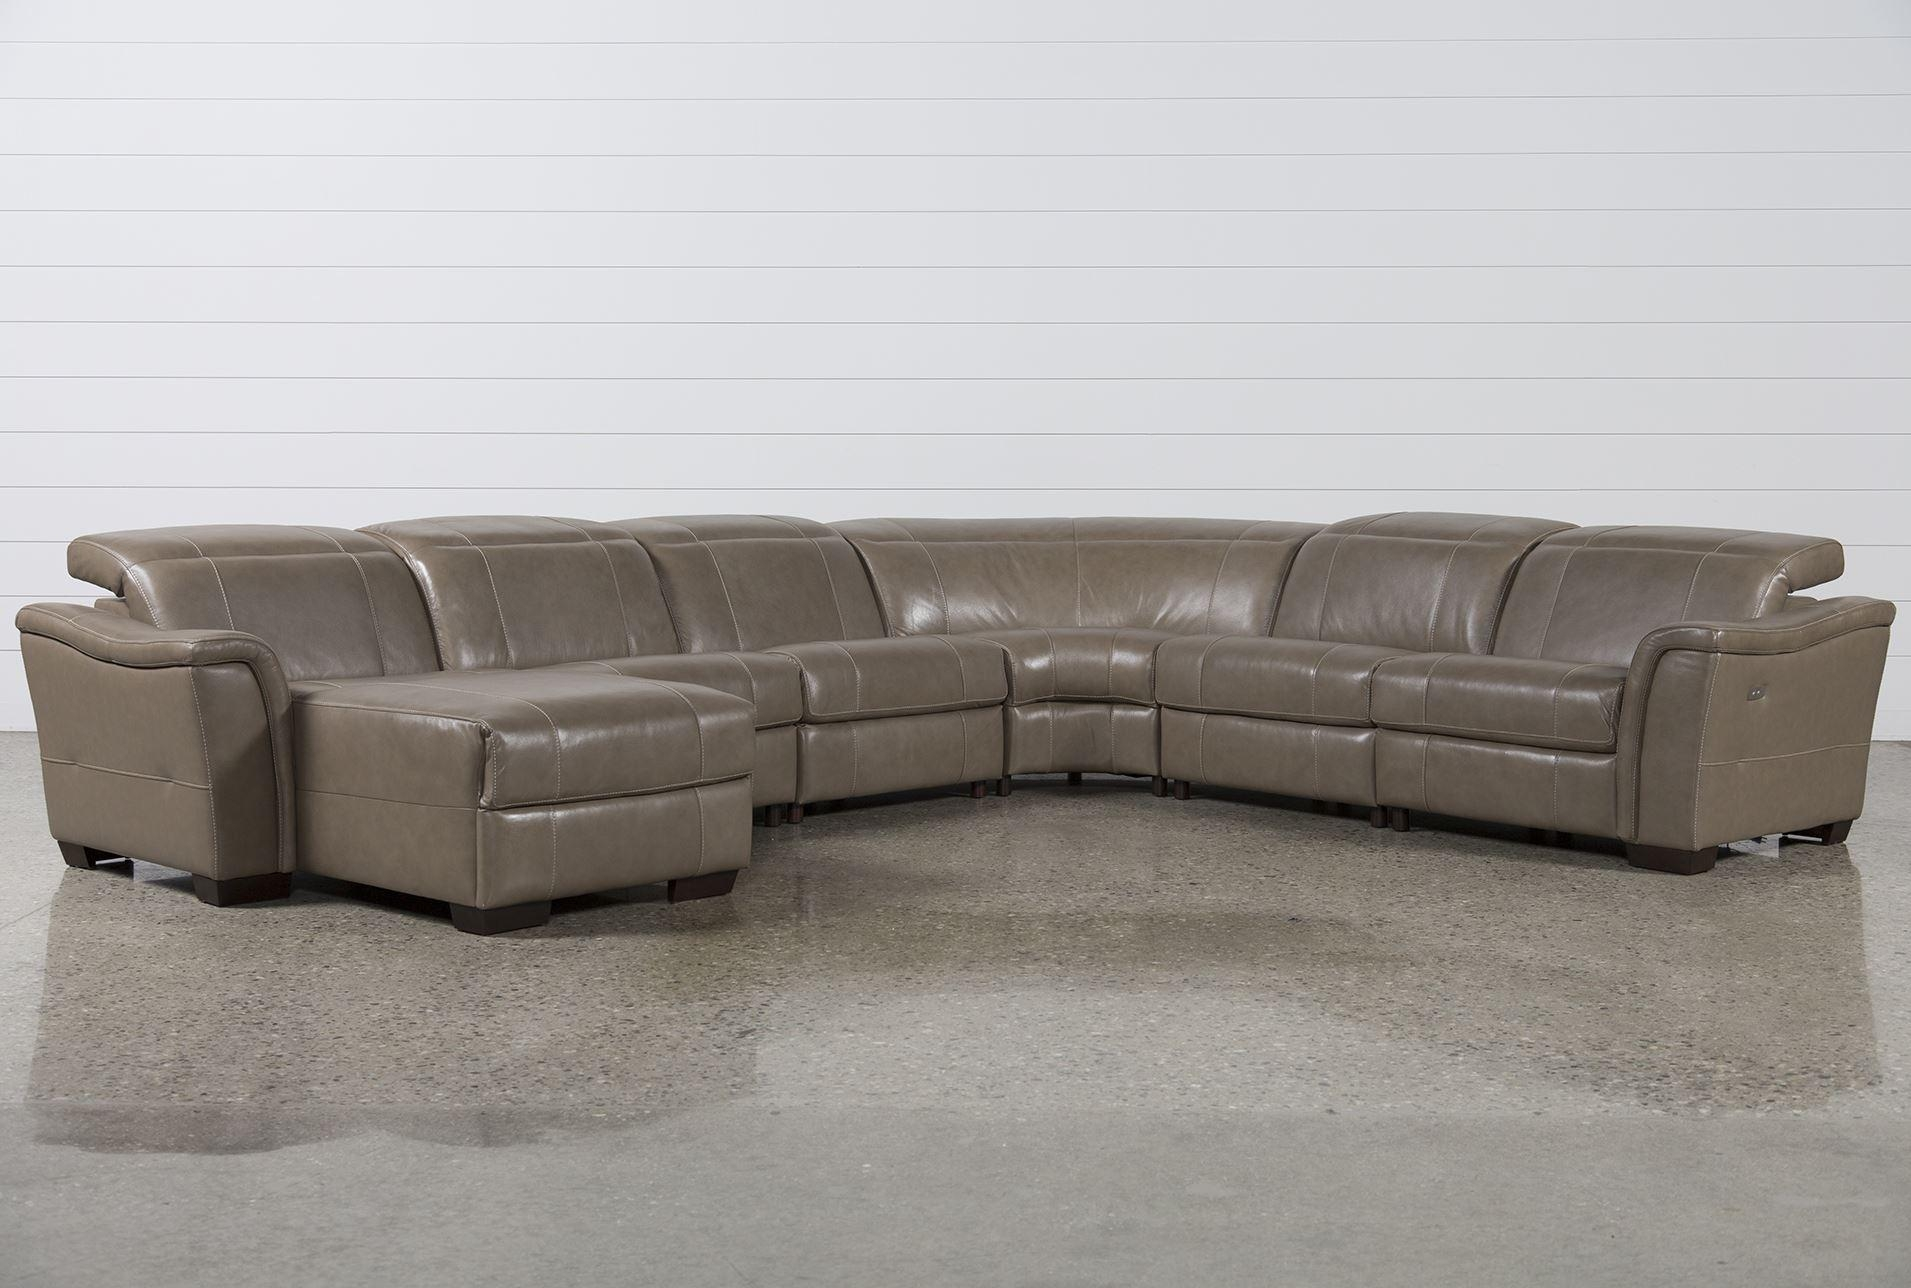 Unique 6 Piece Sectional Sofa 31 In Sofas And Couches Ideas With 6 Within 6 Piece Sectional Sofas Couches (Image 20 of 20)